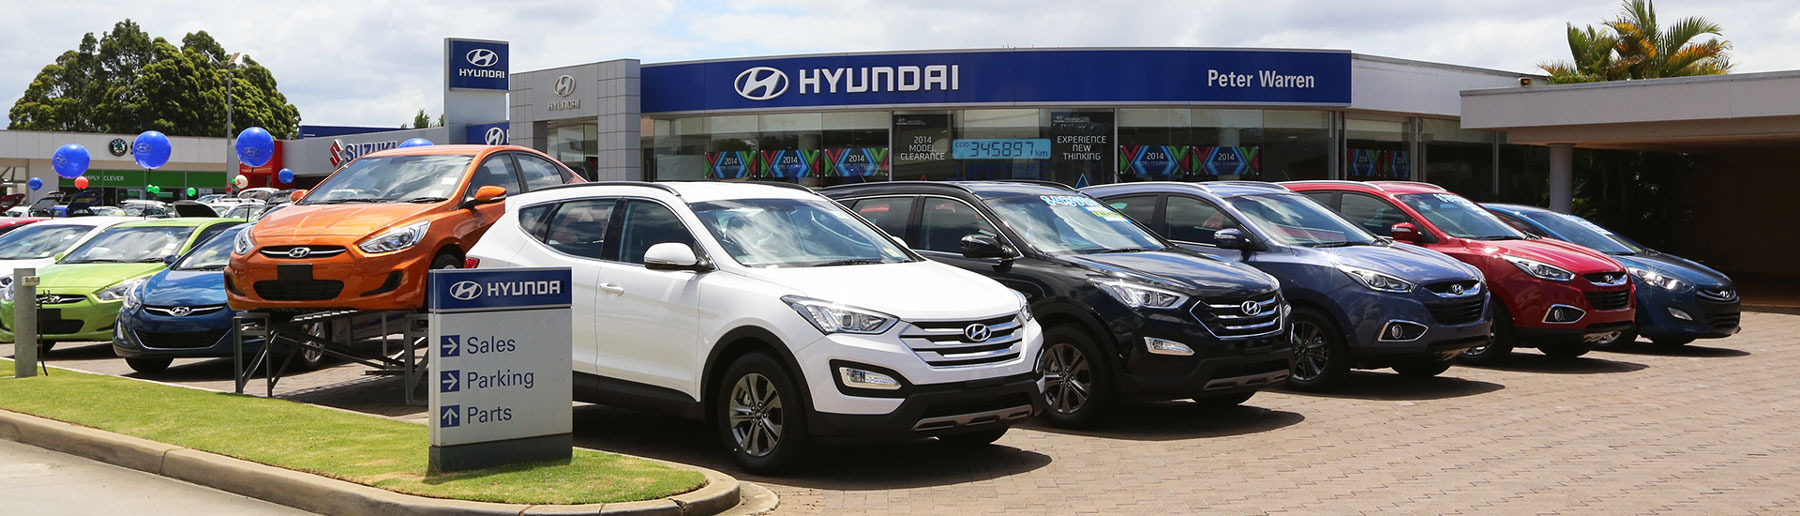 Peter Warren Hyundai